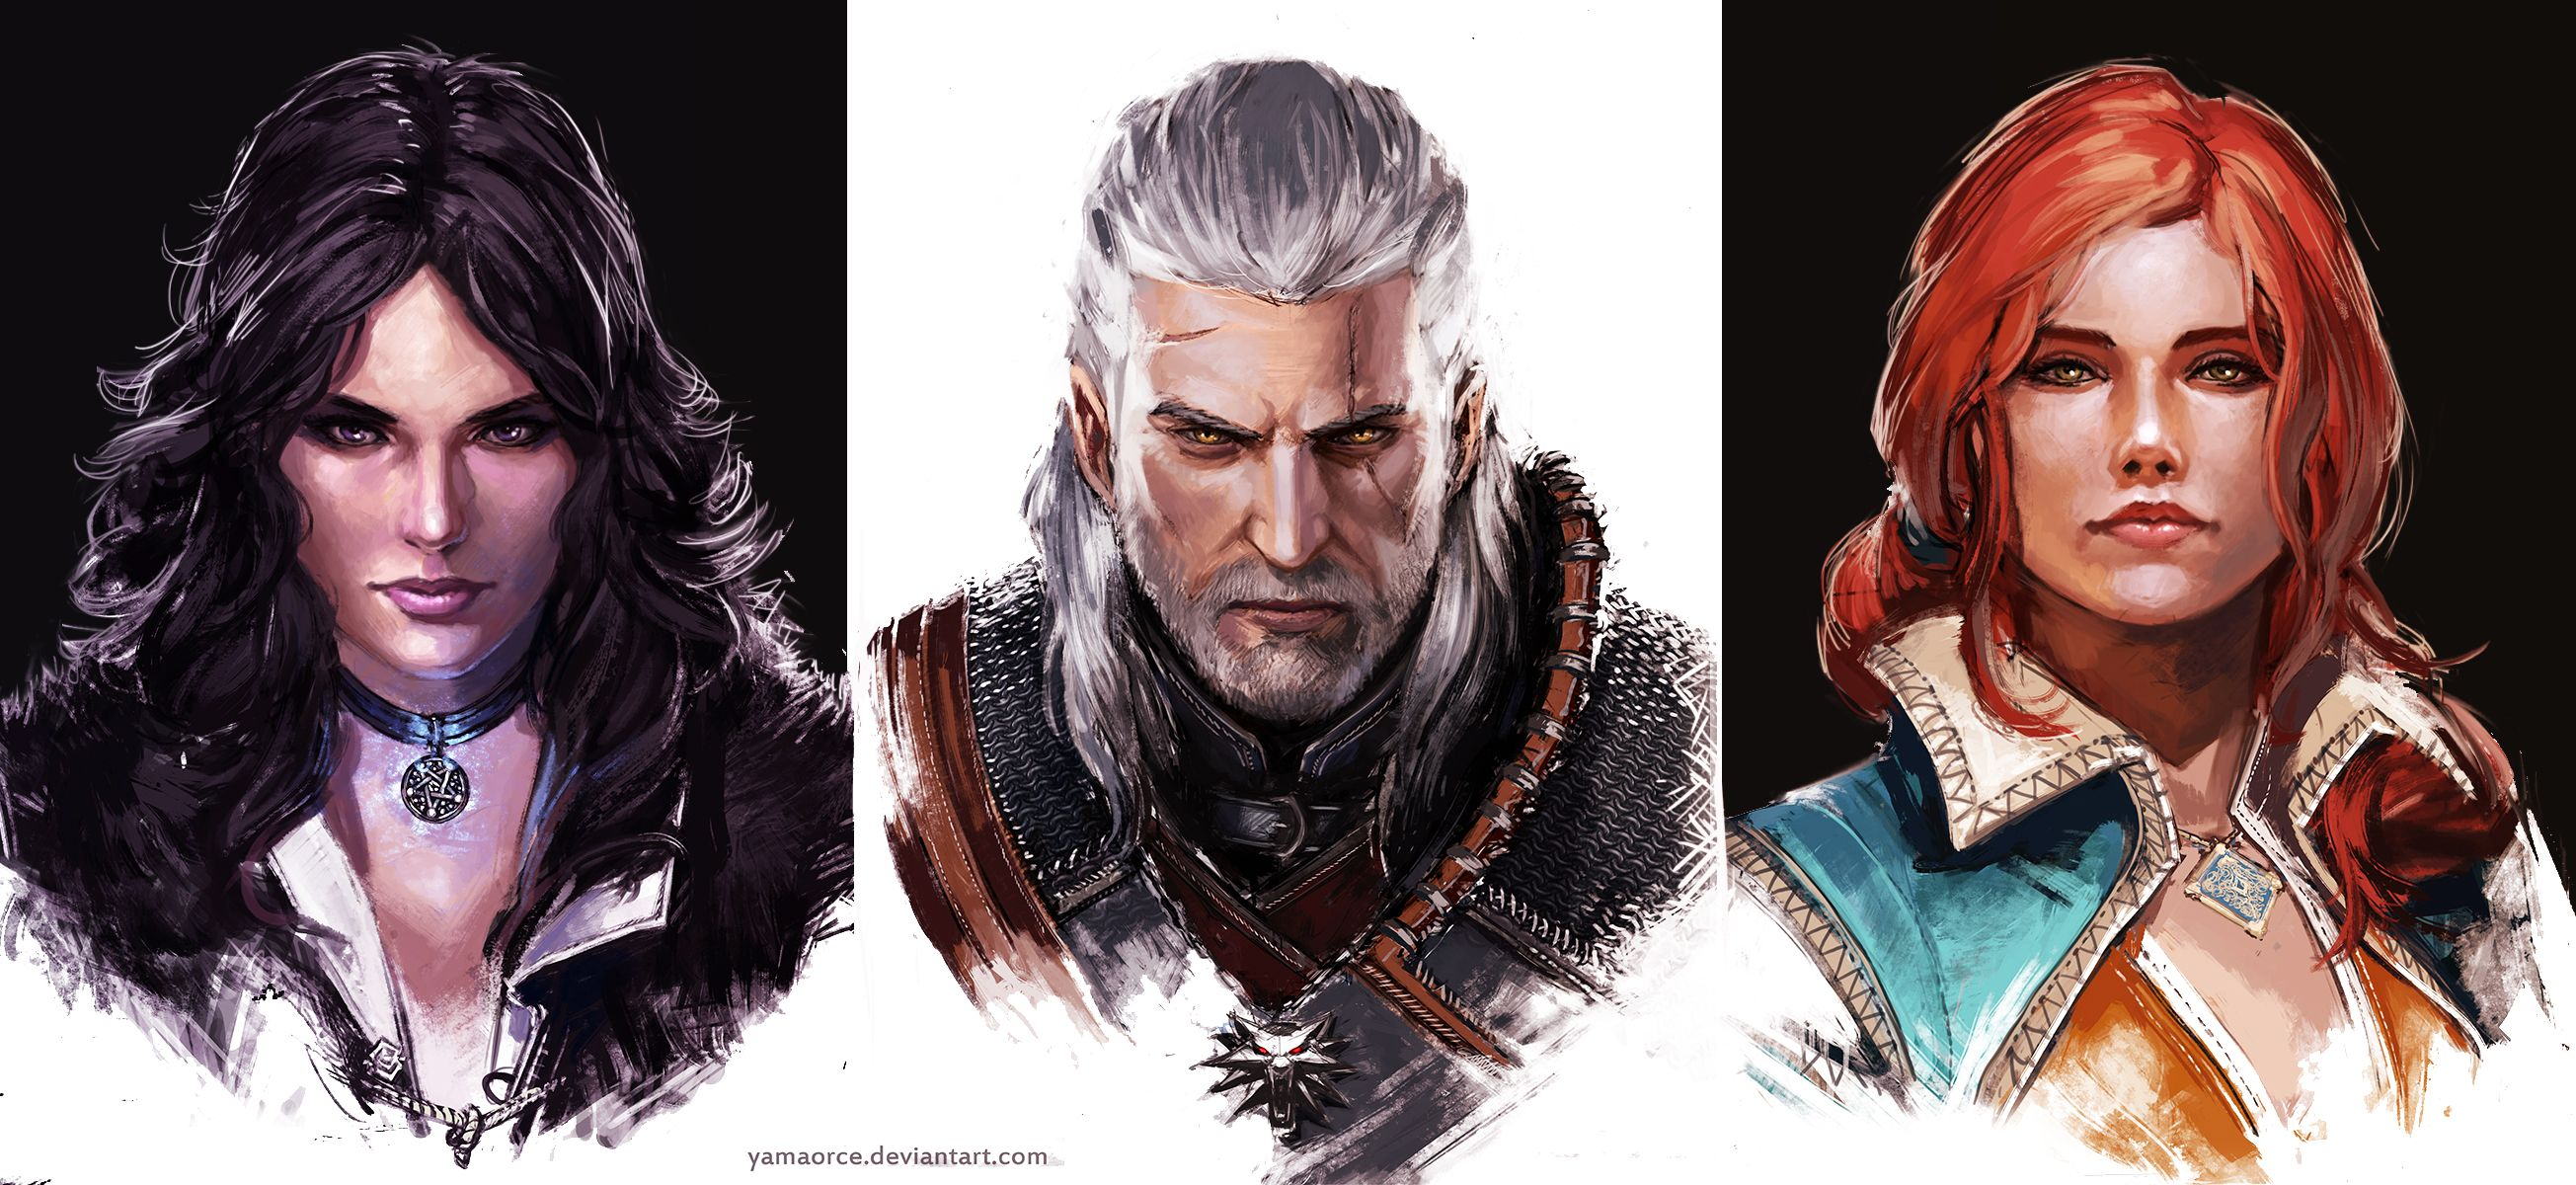 The Witcher portraits by YamaOrce.deviantart.com on @DeviantArt